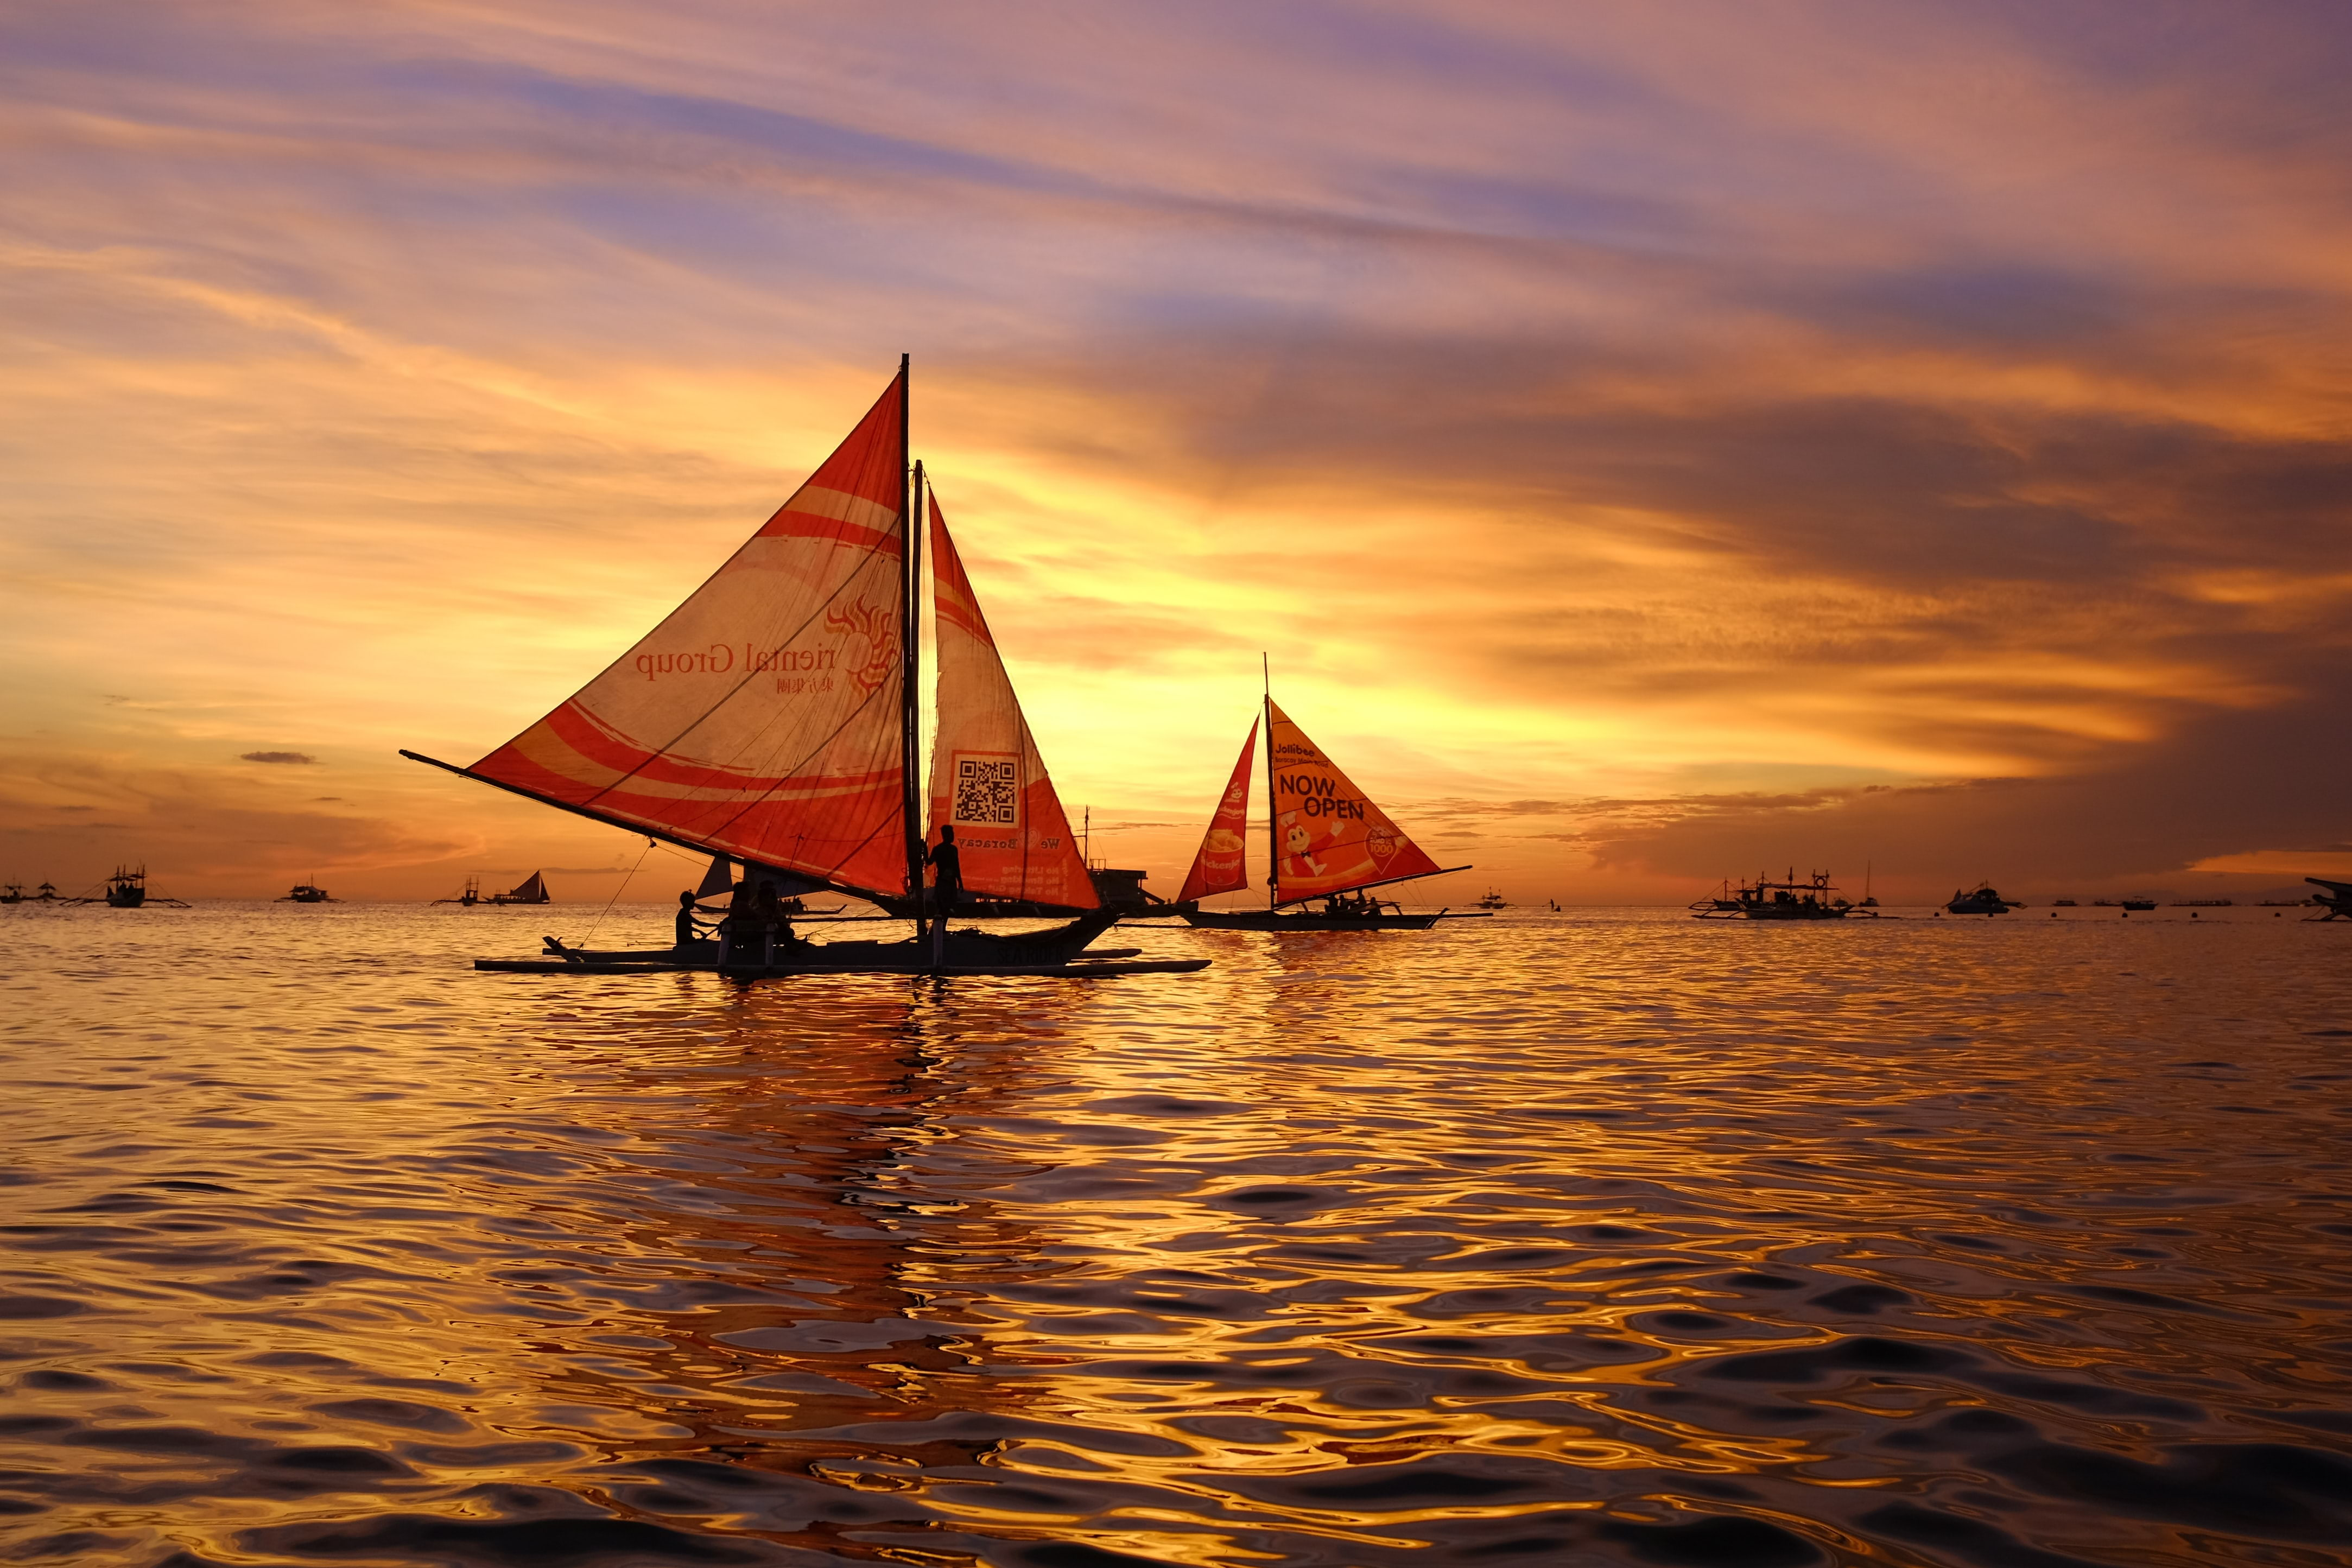 silhouette of sail boats floating on body of water